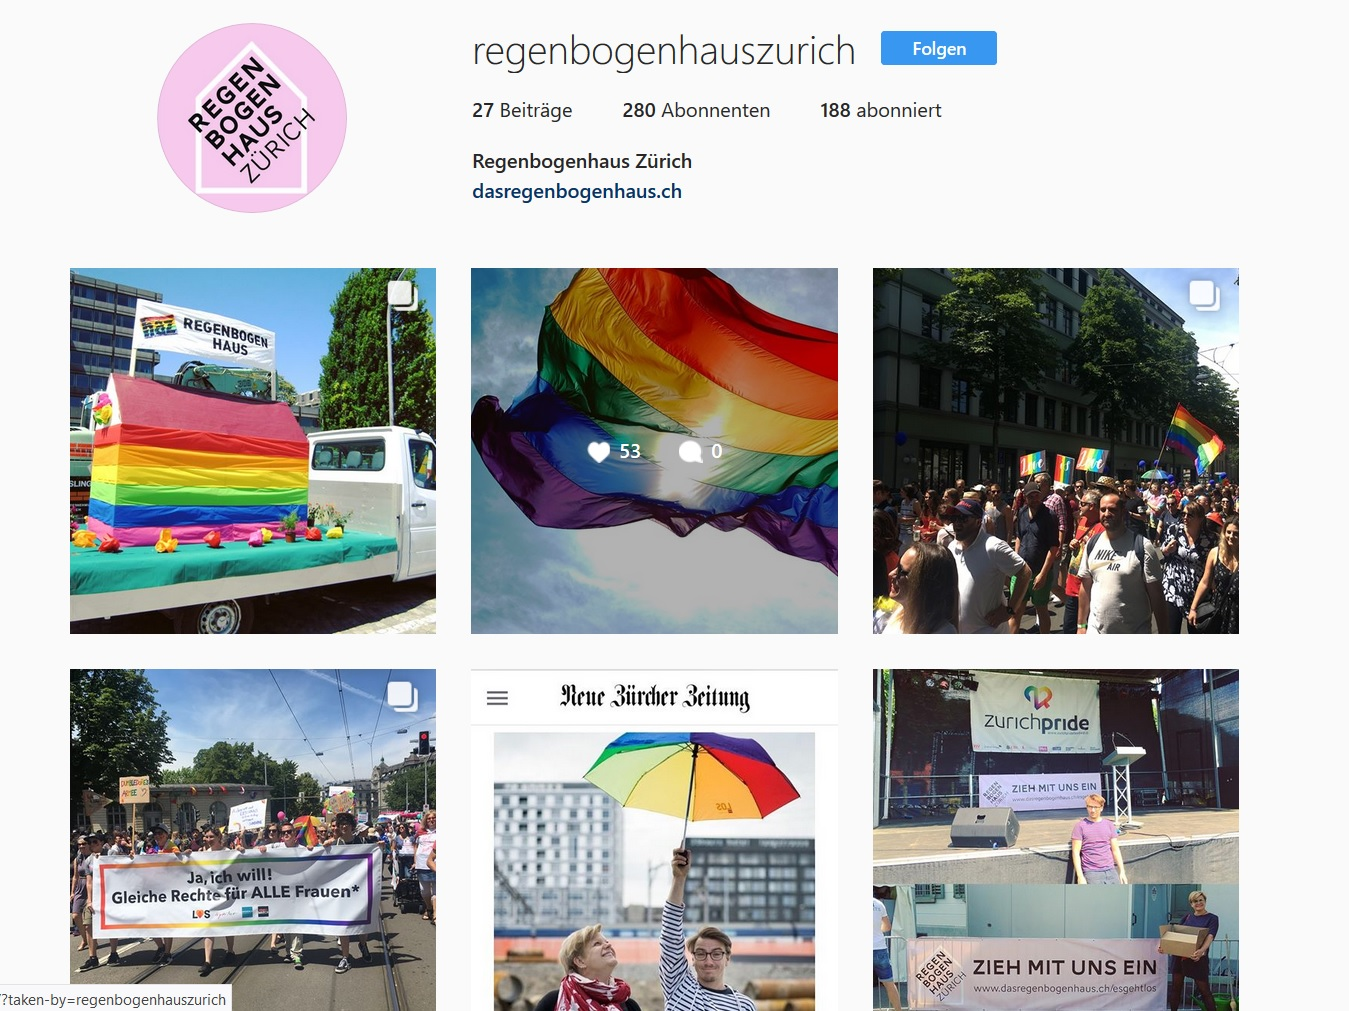 Screenshot Instagram-Account regenbogenhauszurich